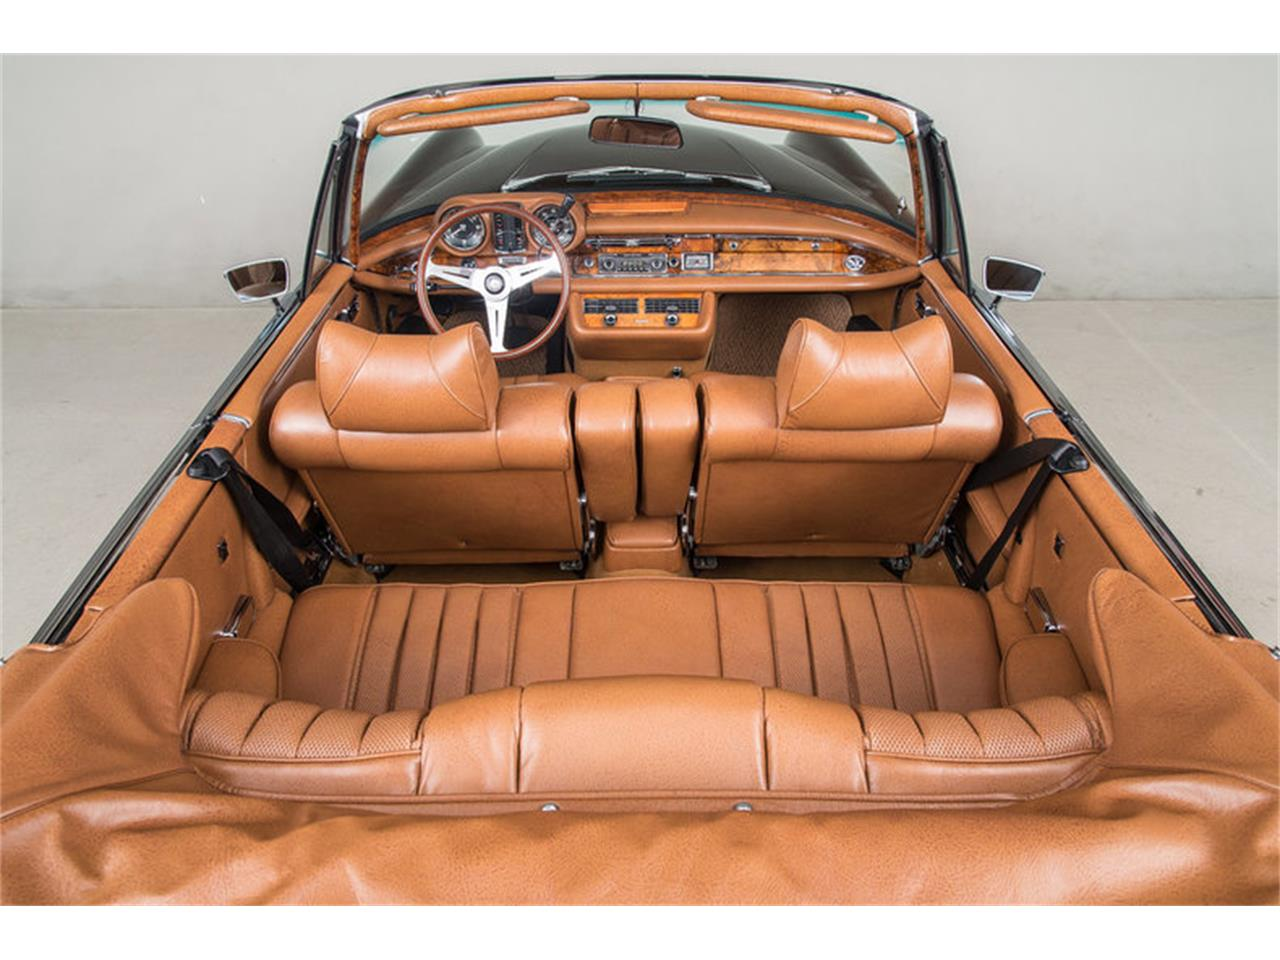 Large Picture of Classic '71 Mercedes-Benz 280 SE 3.5 Cabriolet located in California Auction Vehicle - G0JQ